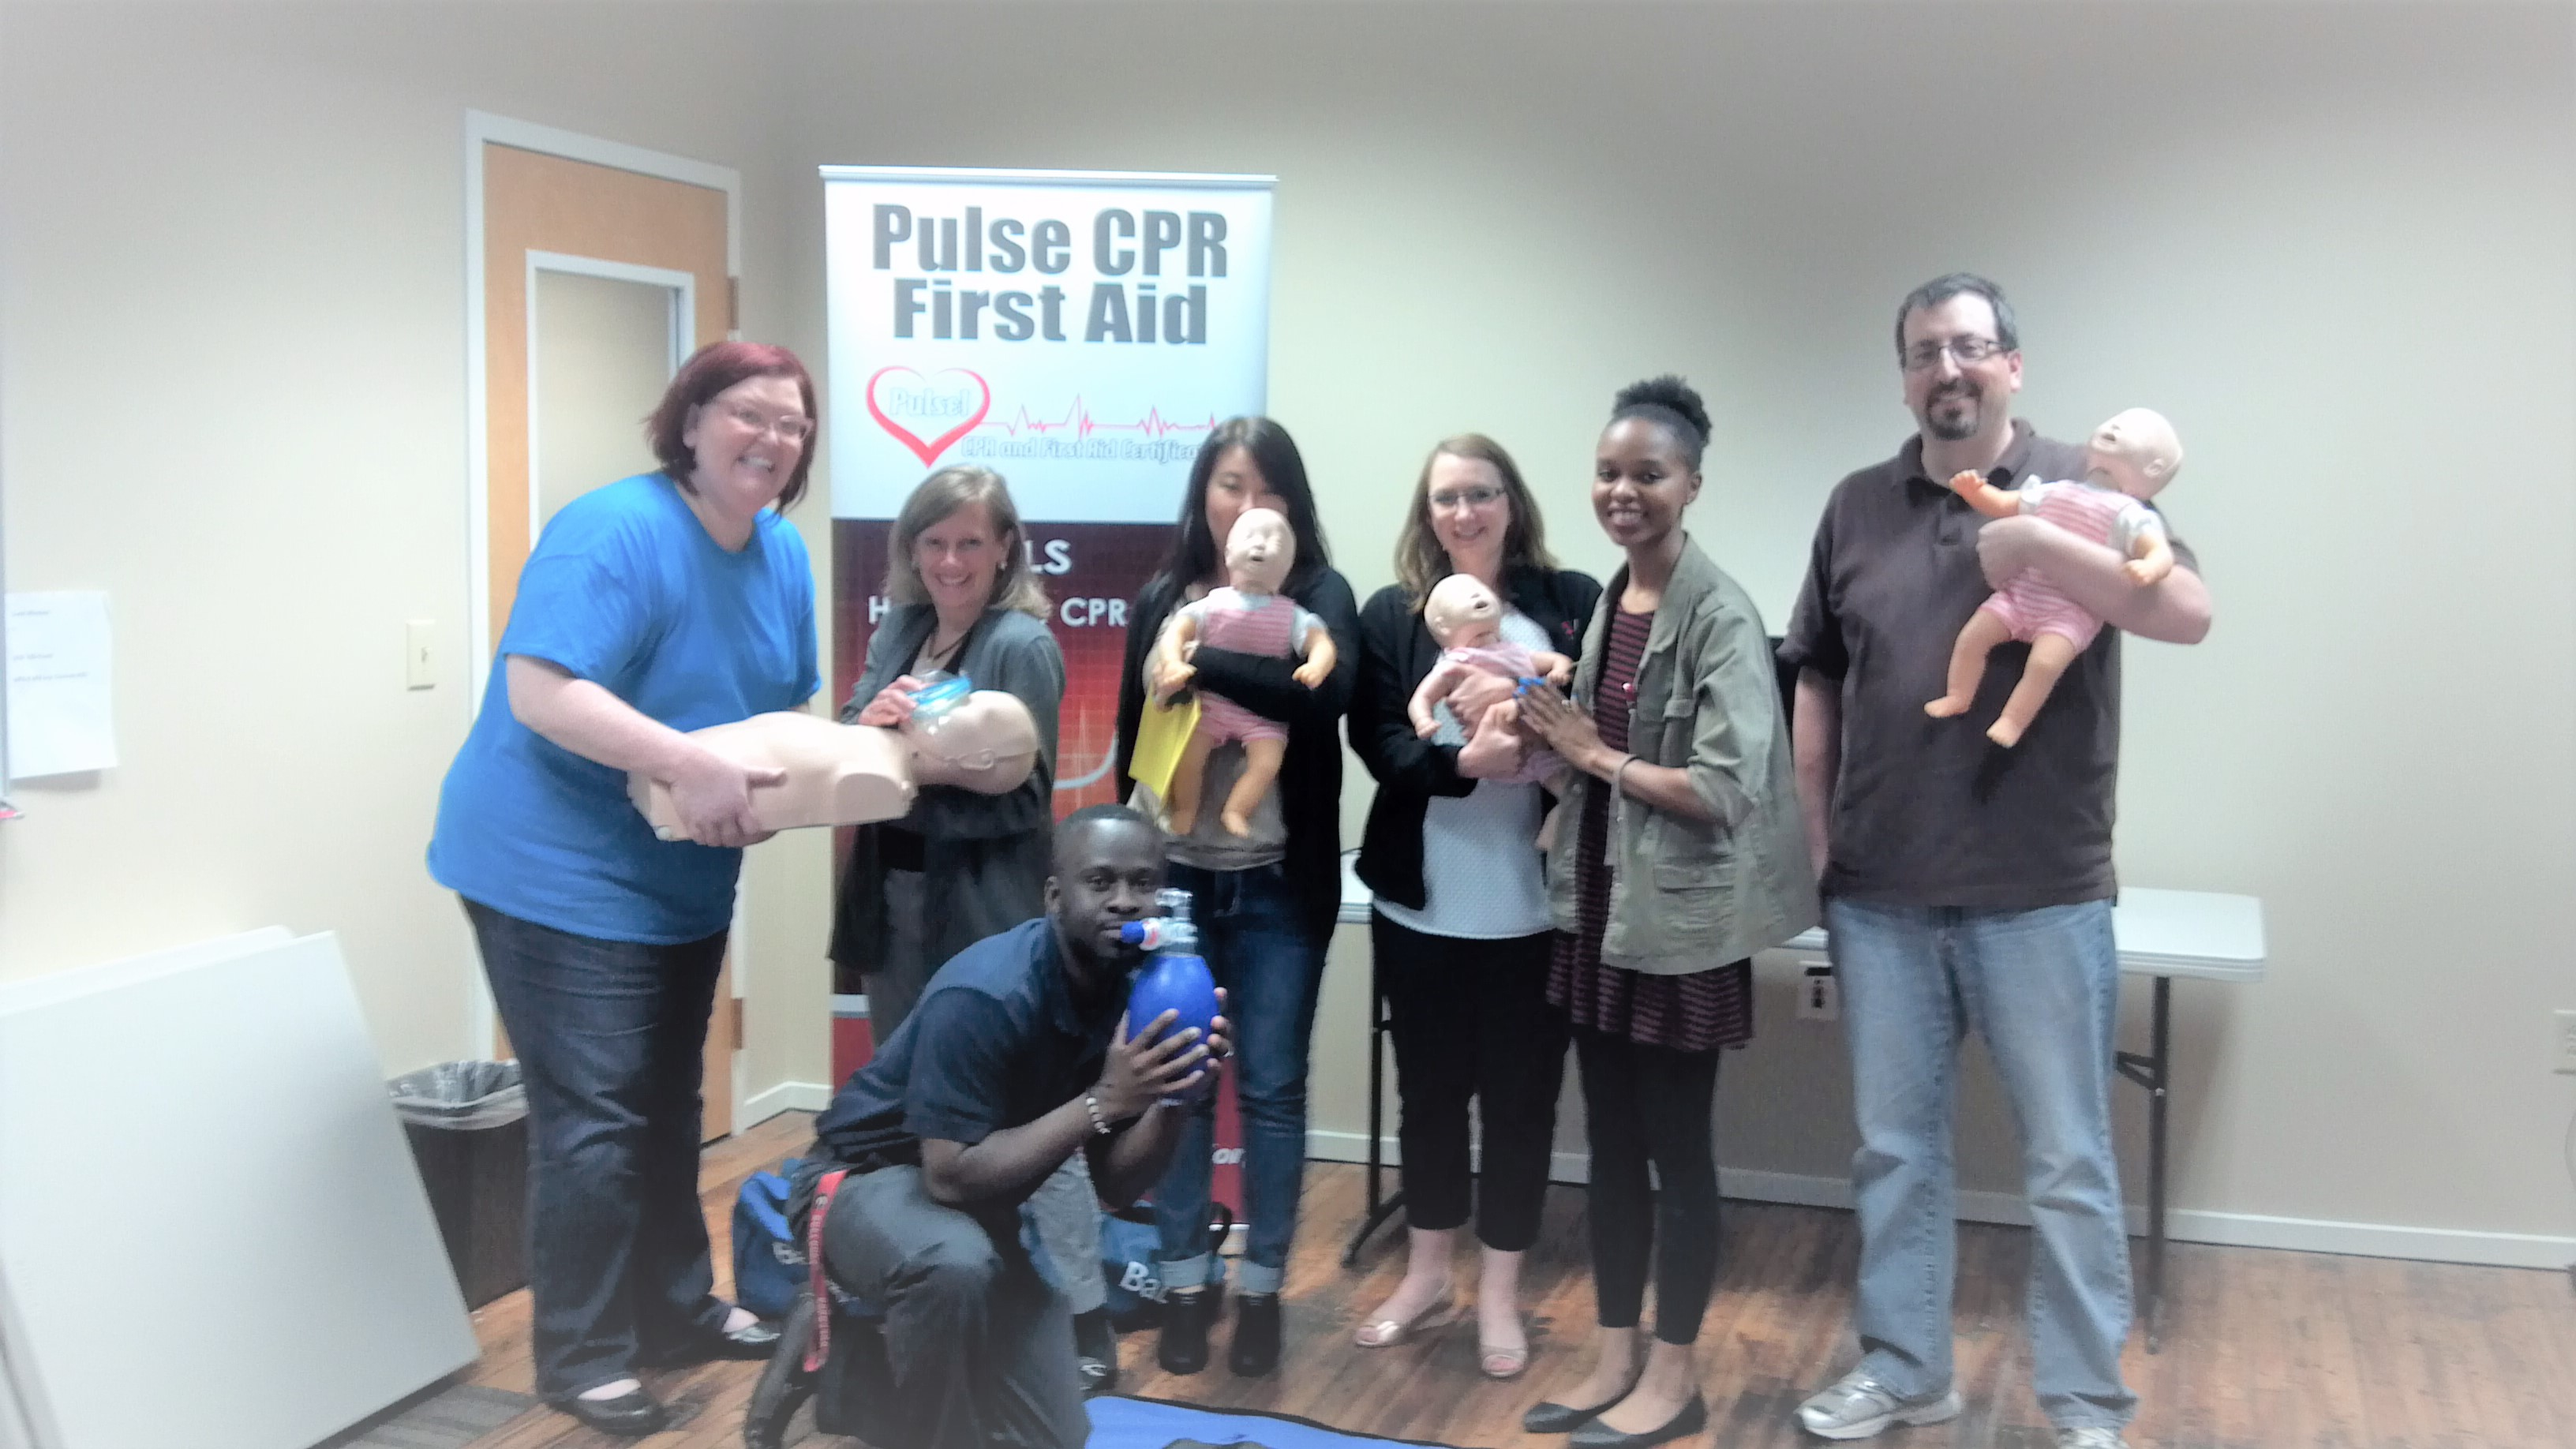 Pulse cpr augusta news pulse cpr augusta news some pretty simple lifestyle changes can help with high blood pressure xflitez Choice Image